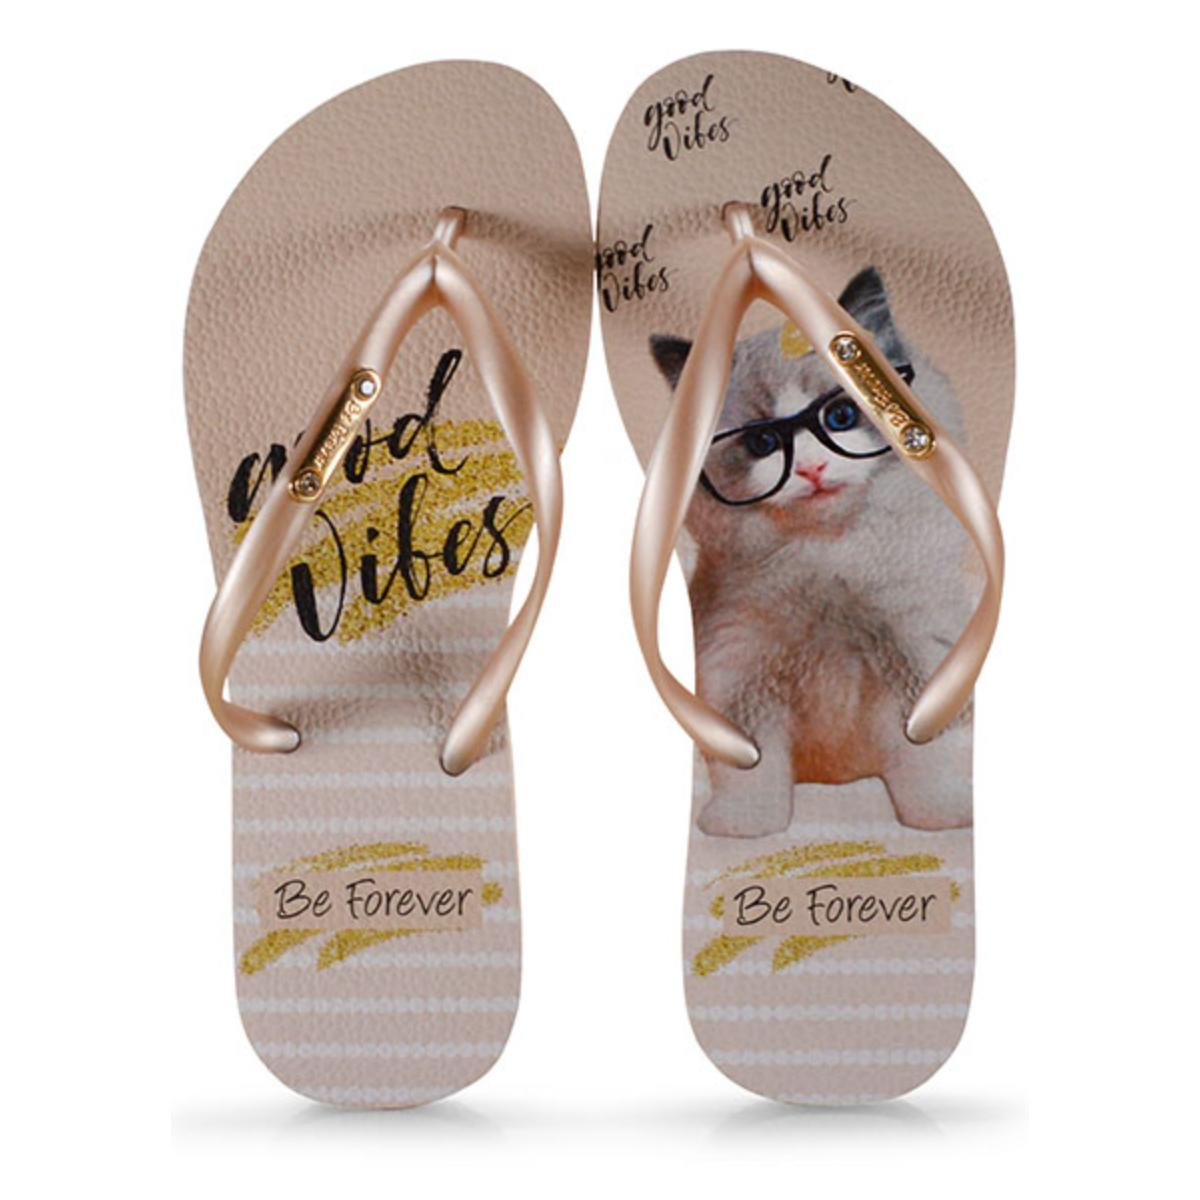 Chinelo Feminino Rafitthy 110.01702 Cat Good Vibes Dourado